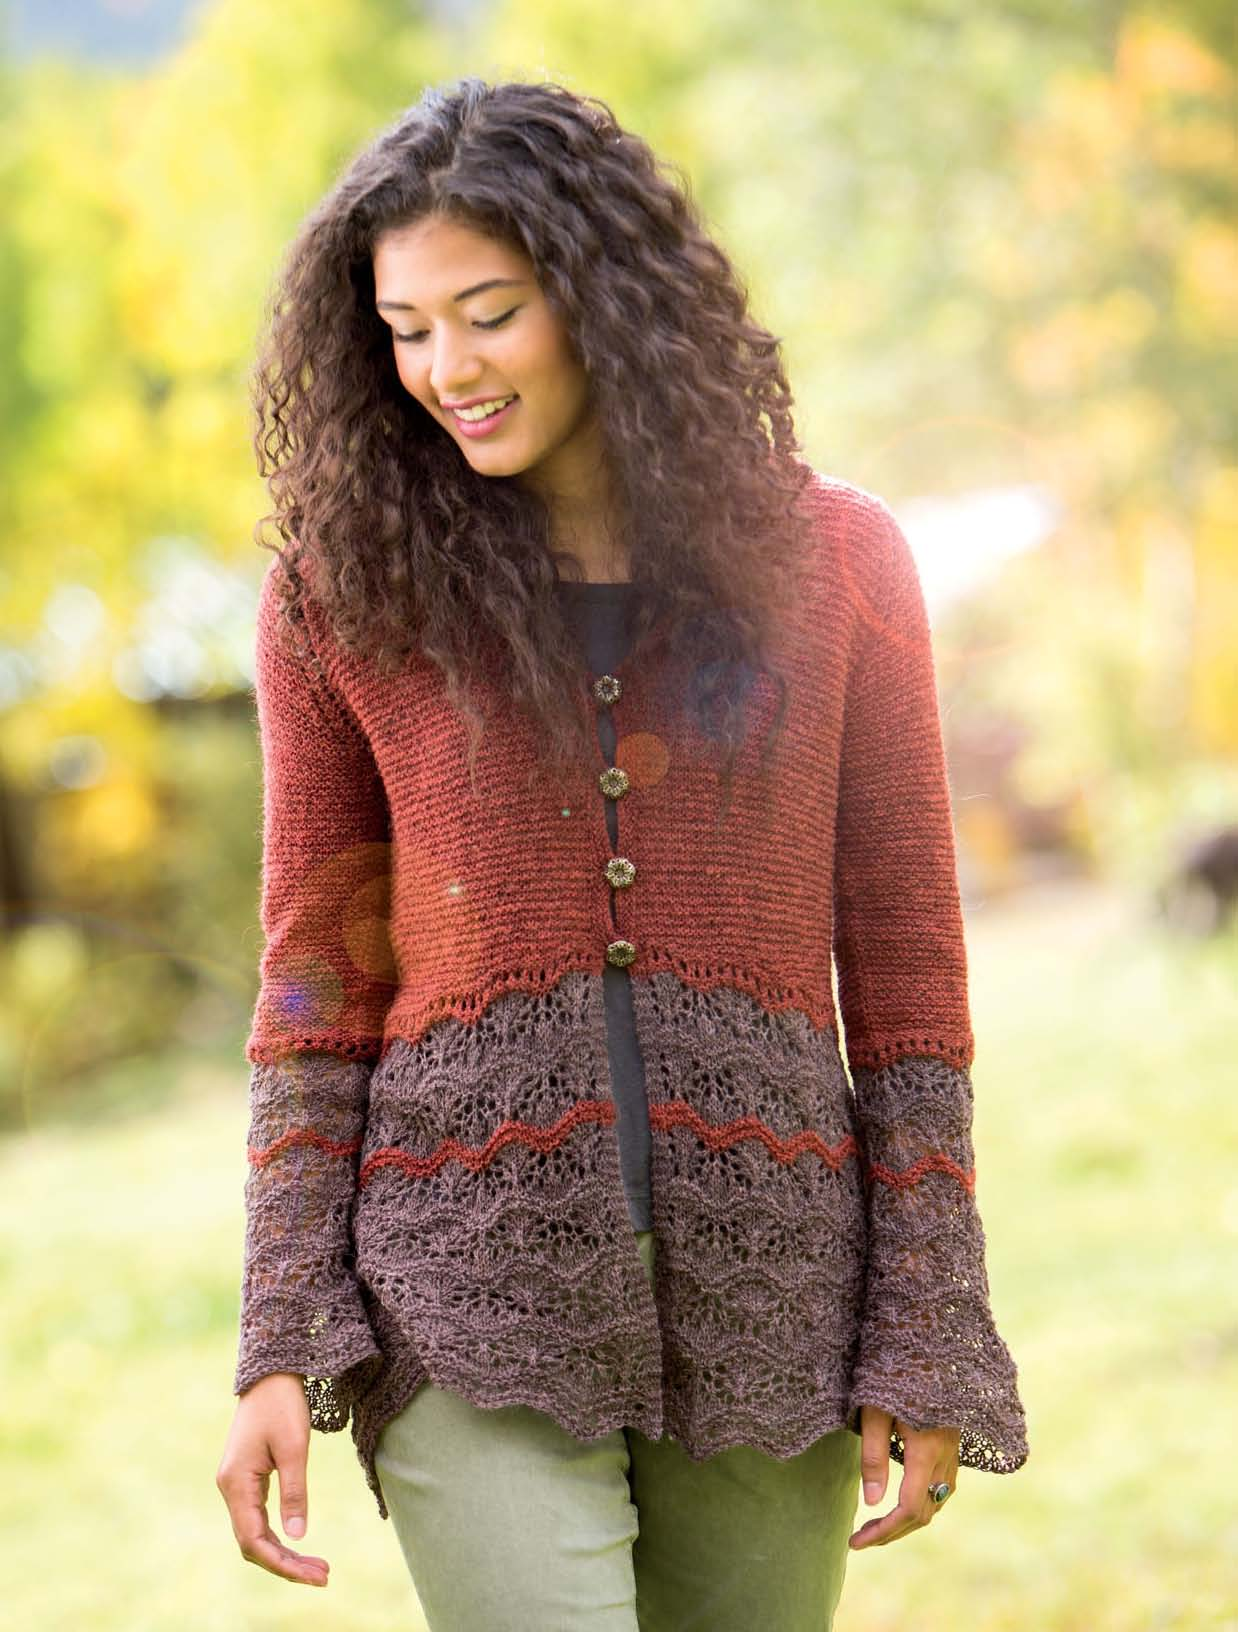 New lace knitting with romi hill a giveaway tanisknits new lace knitting talus cardigan interior beauty image bankloansurffo Image collections